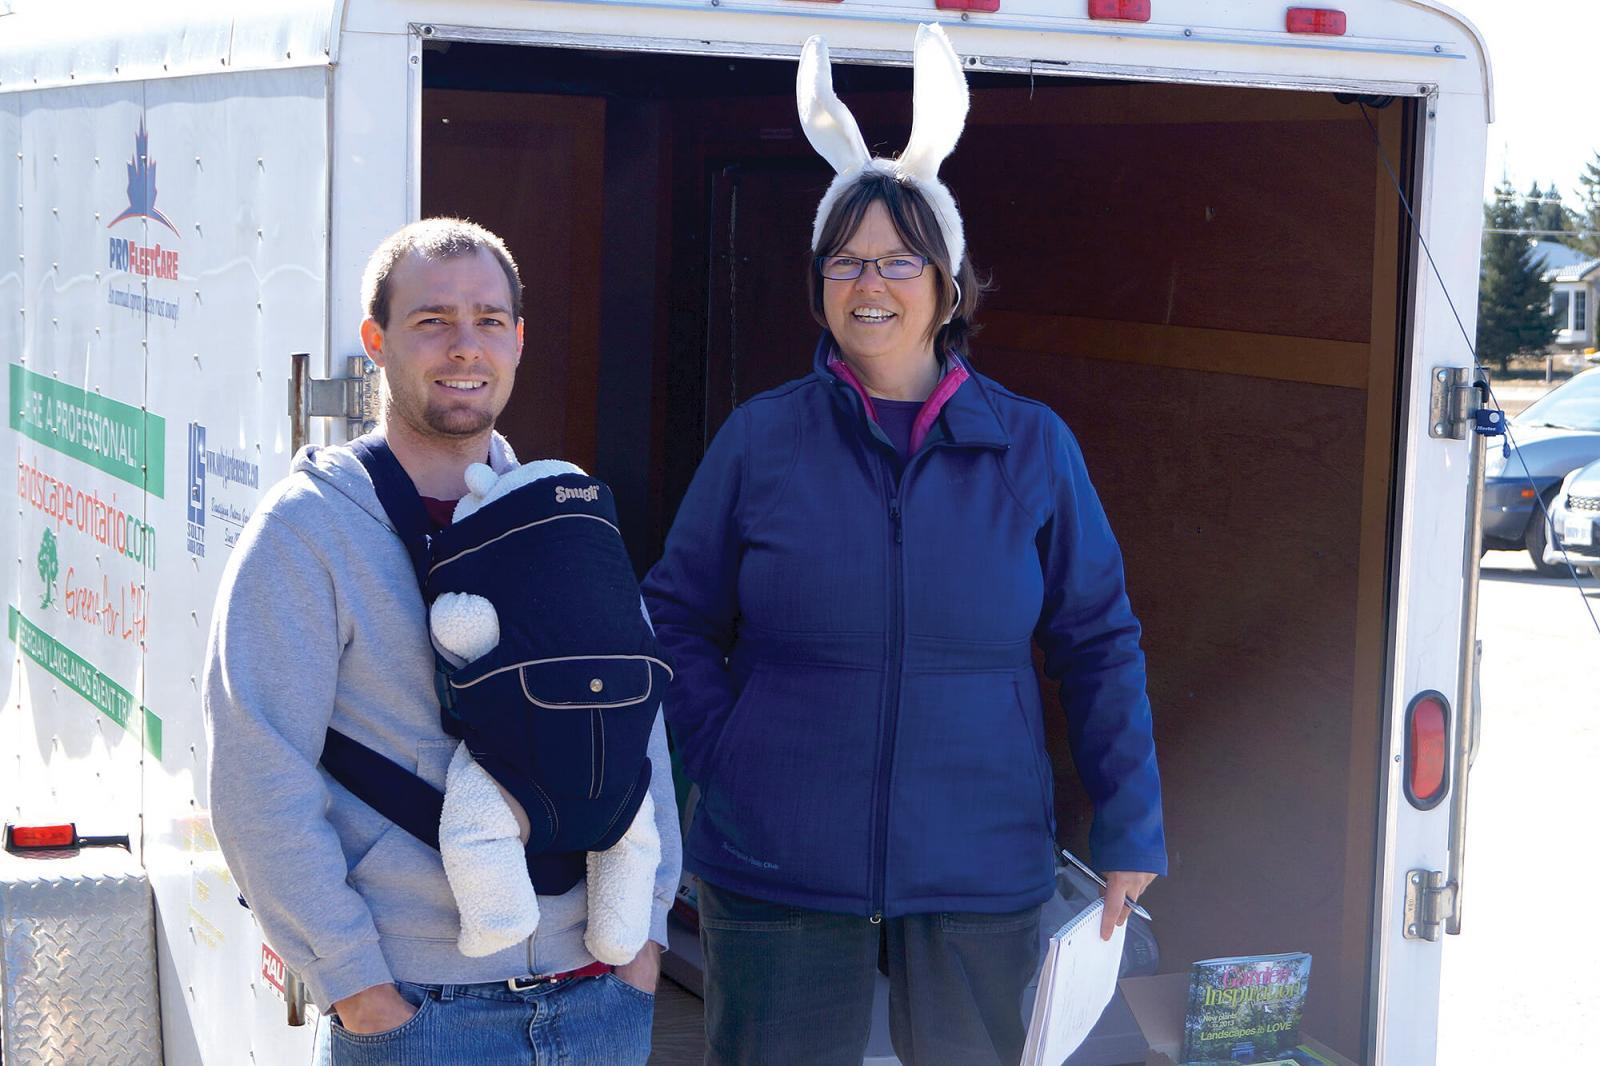 Lynne Barnes of Gordon J Leece Landscapes, Thornbury, is joined by an area resident after he donated food to the Chapter's food drive in Barrie.